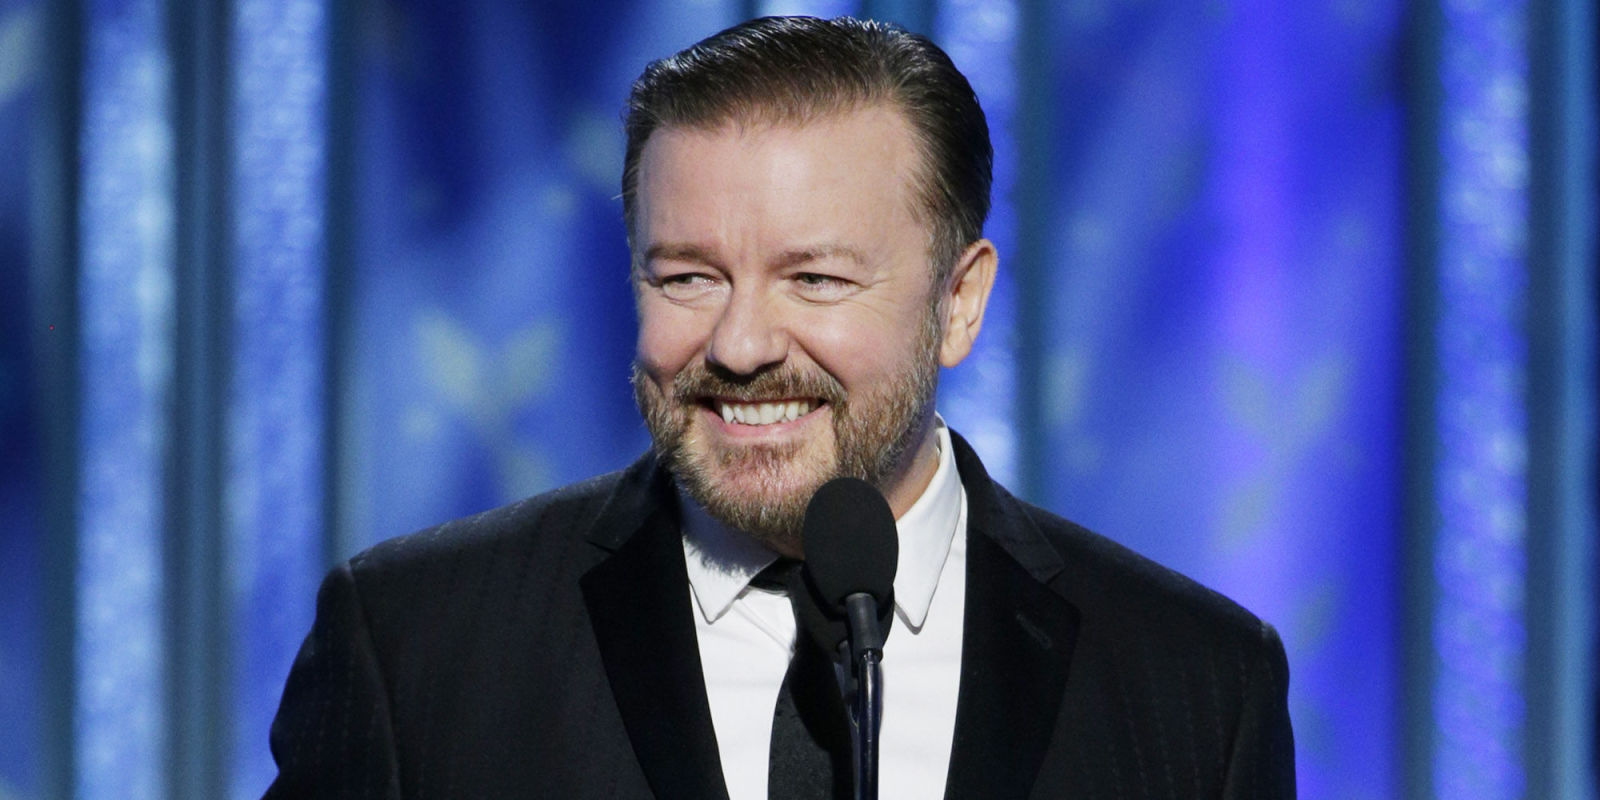 Watch Ricky Gervais on Aging, Offending People, and His Netflix Special Humanity' video